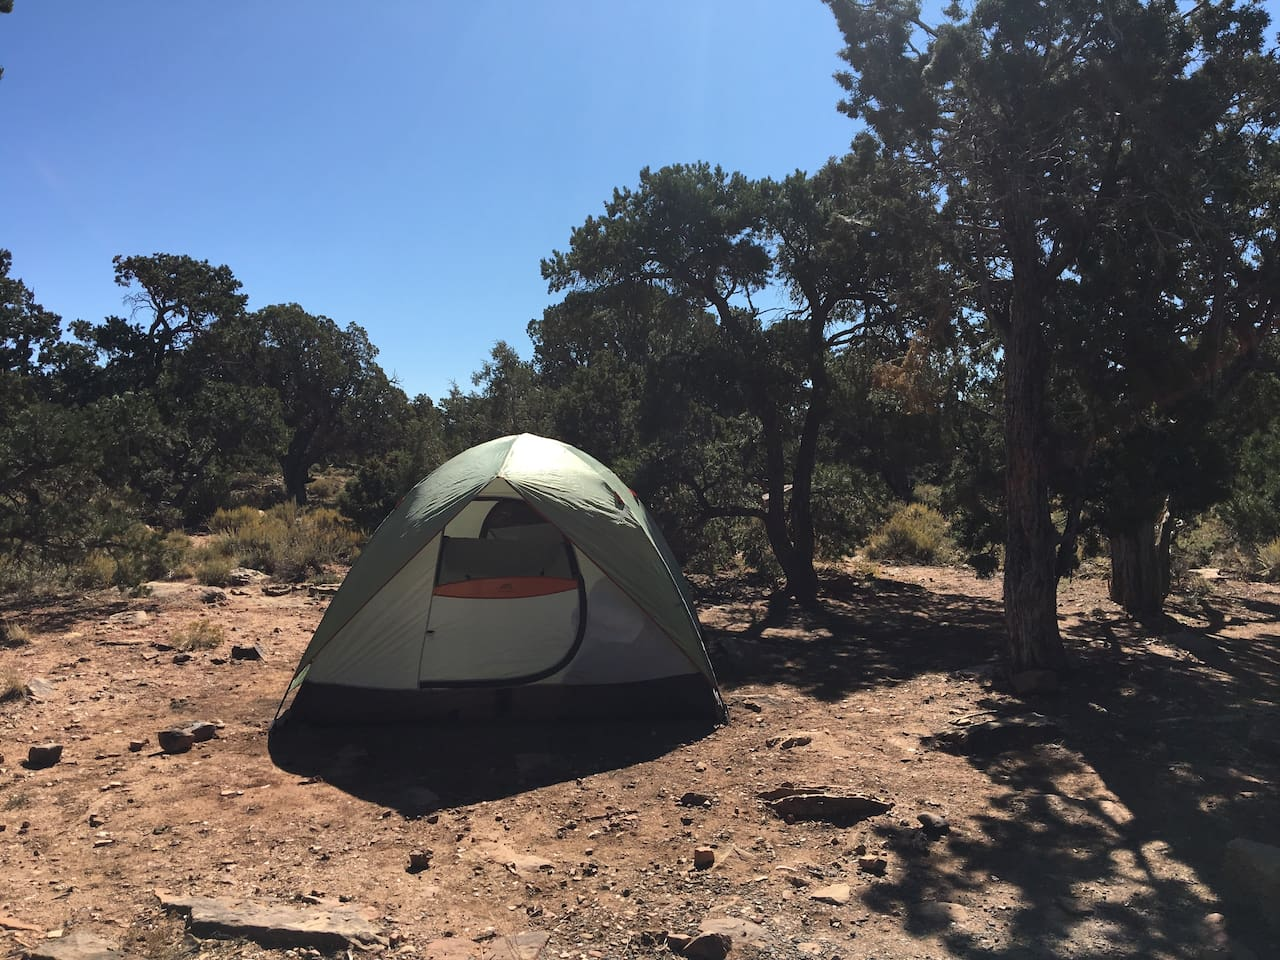 Typical Grand Canyon campsite surroundings